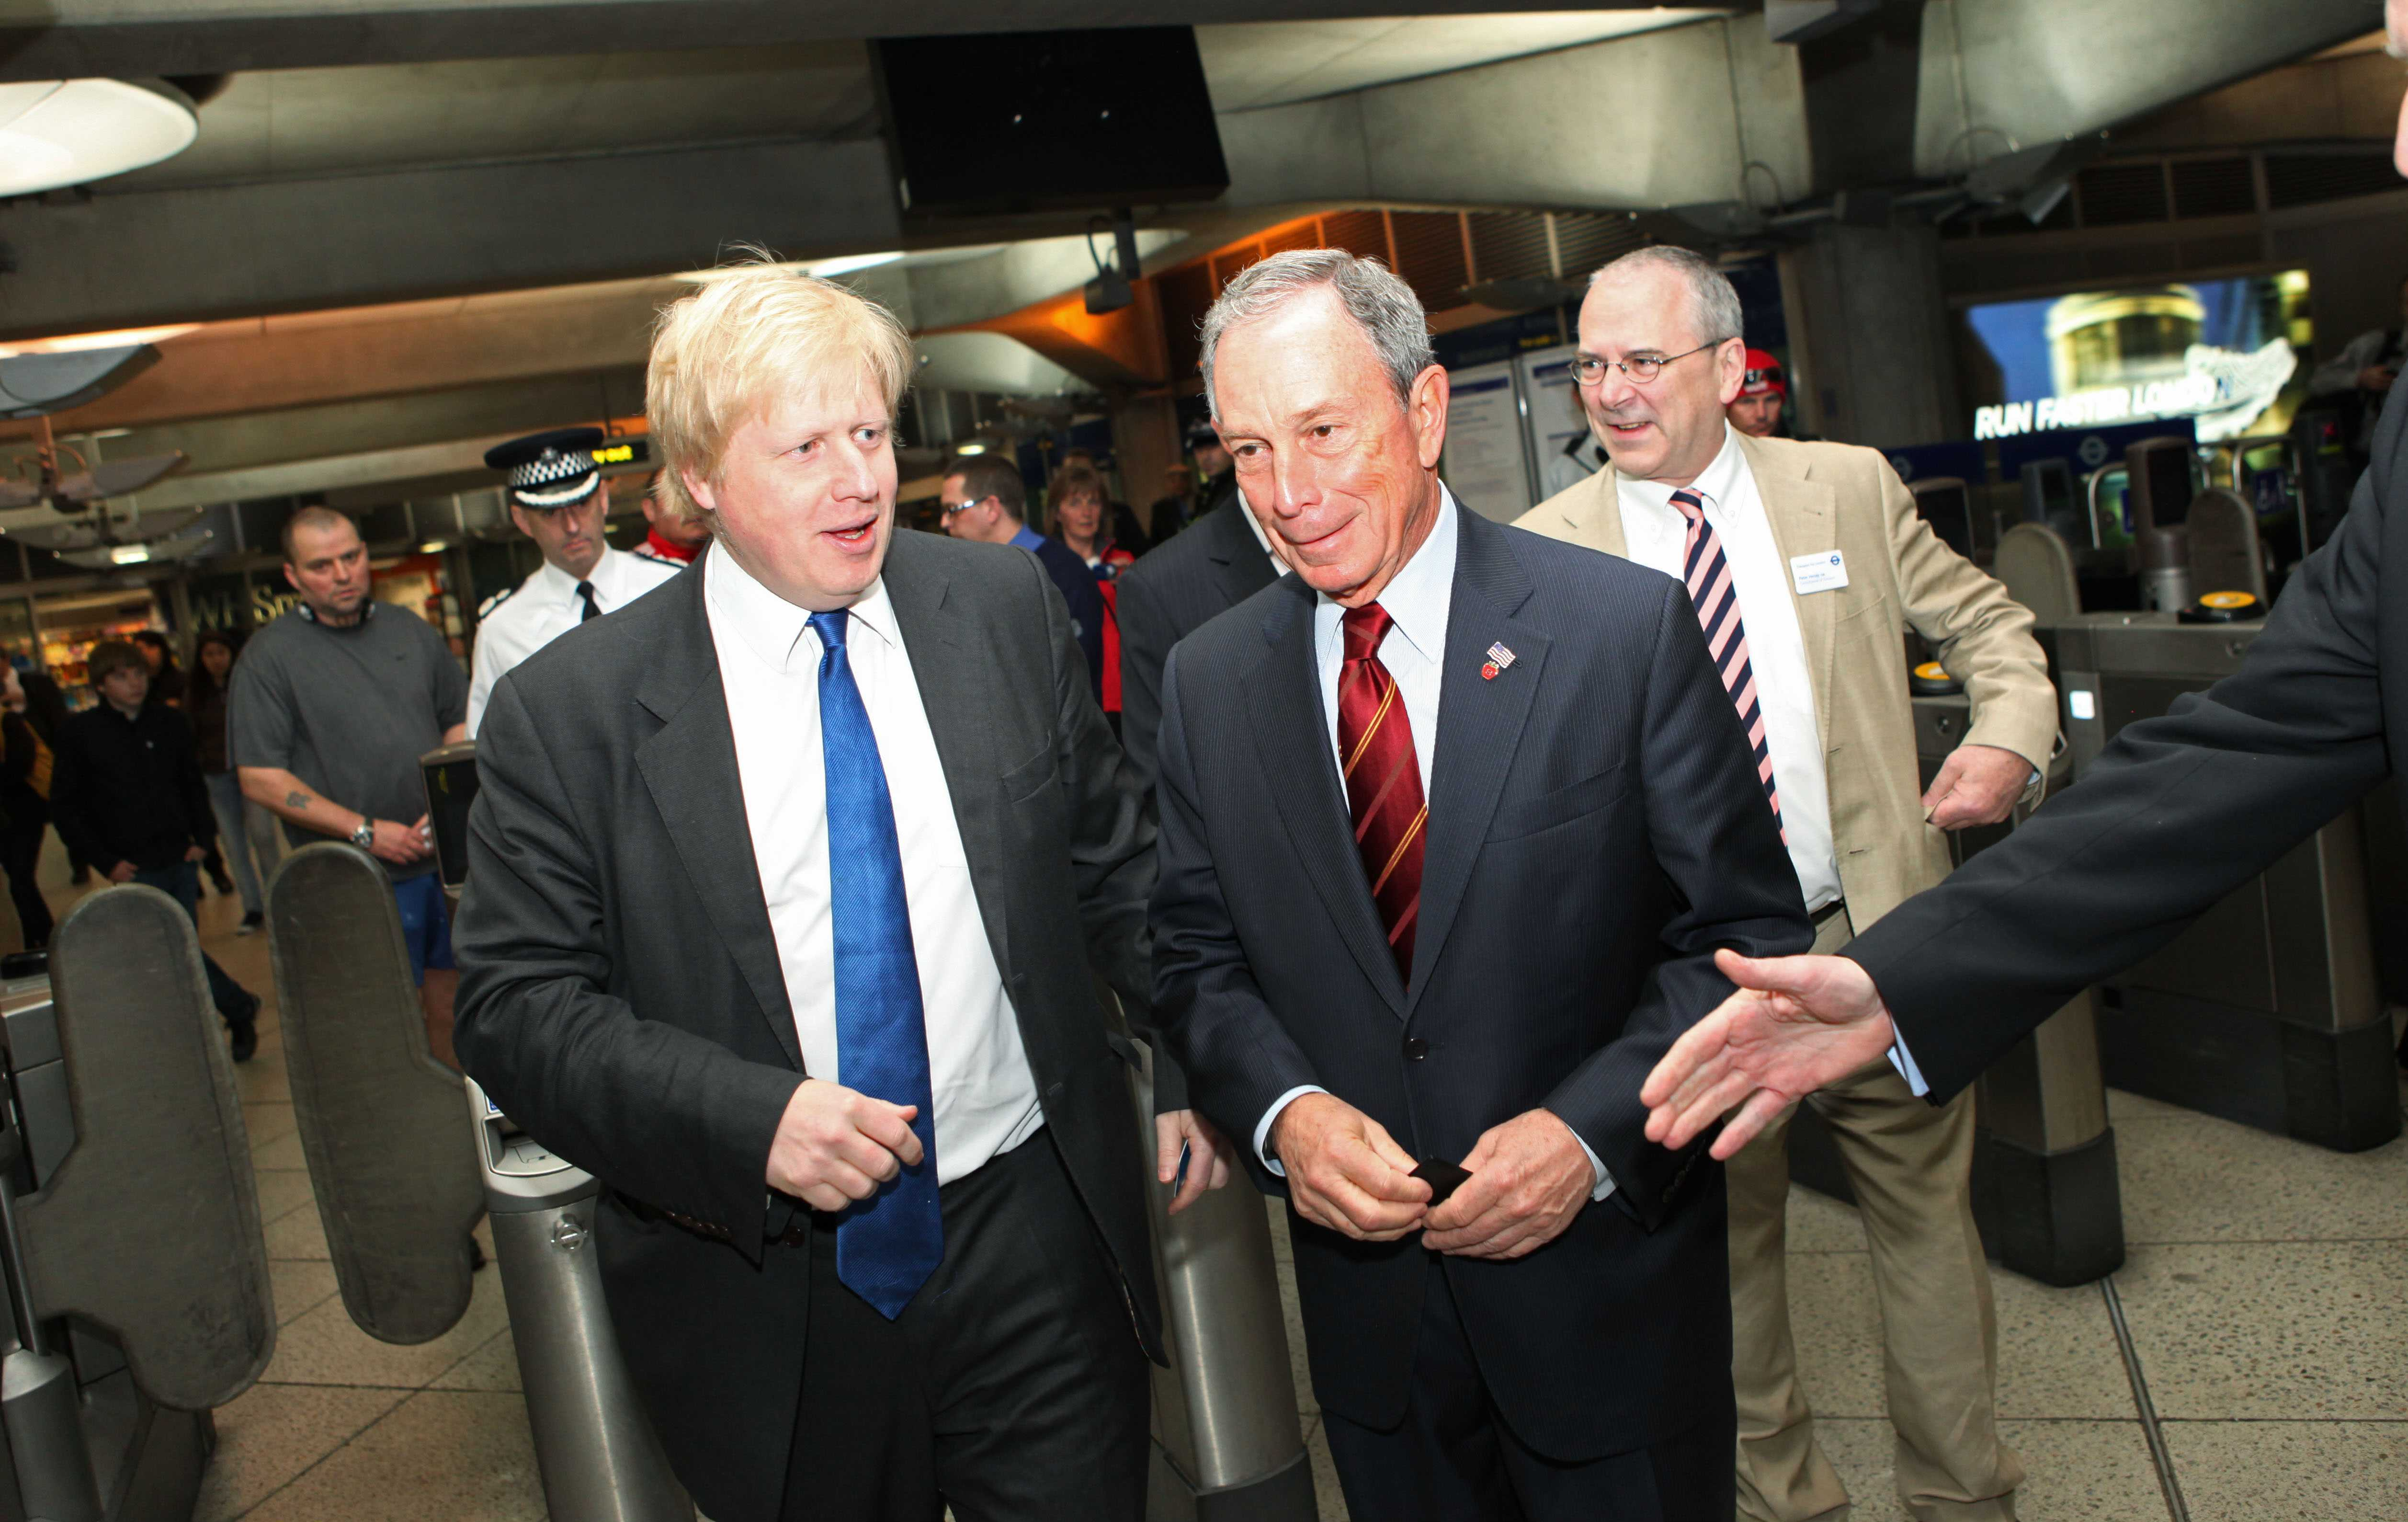 11 May 2010 - London, England - NYC Mayor Michael Bloomberg (Right) with Mayor of London Boris Johnson at Westminster undergound station. Photo Credit: Chris Ratcliffe/Office of Mayor Bloomberg/Sipa Press/1005111916